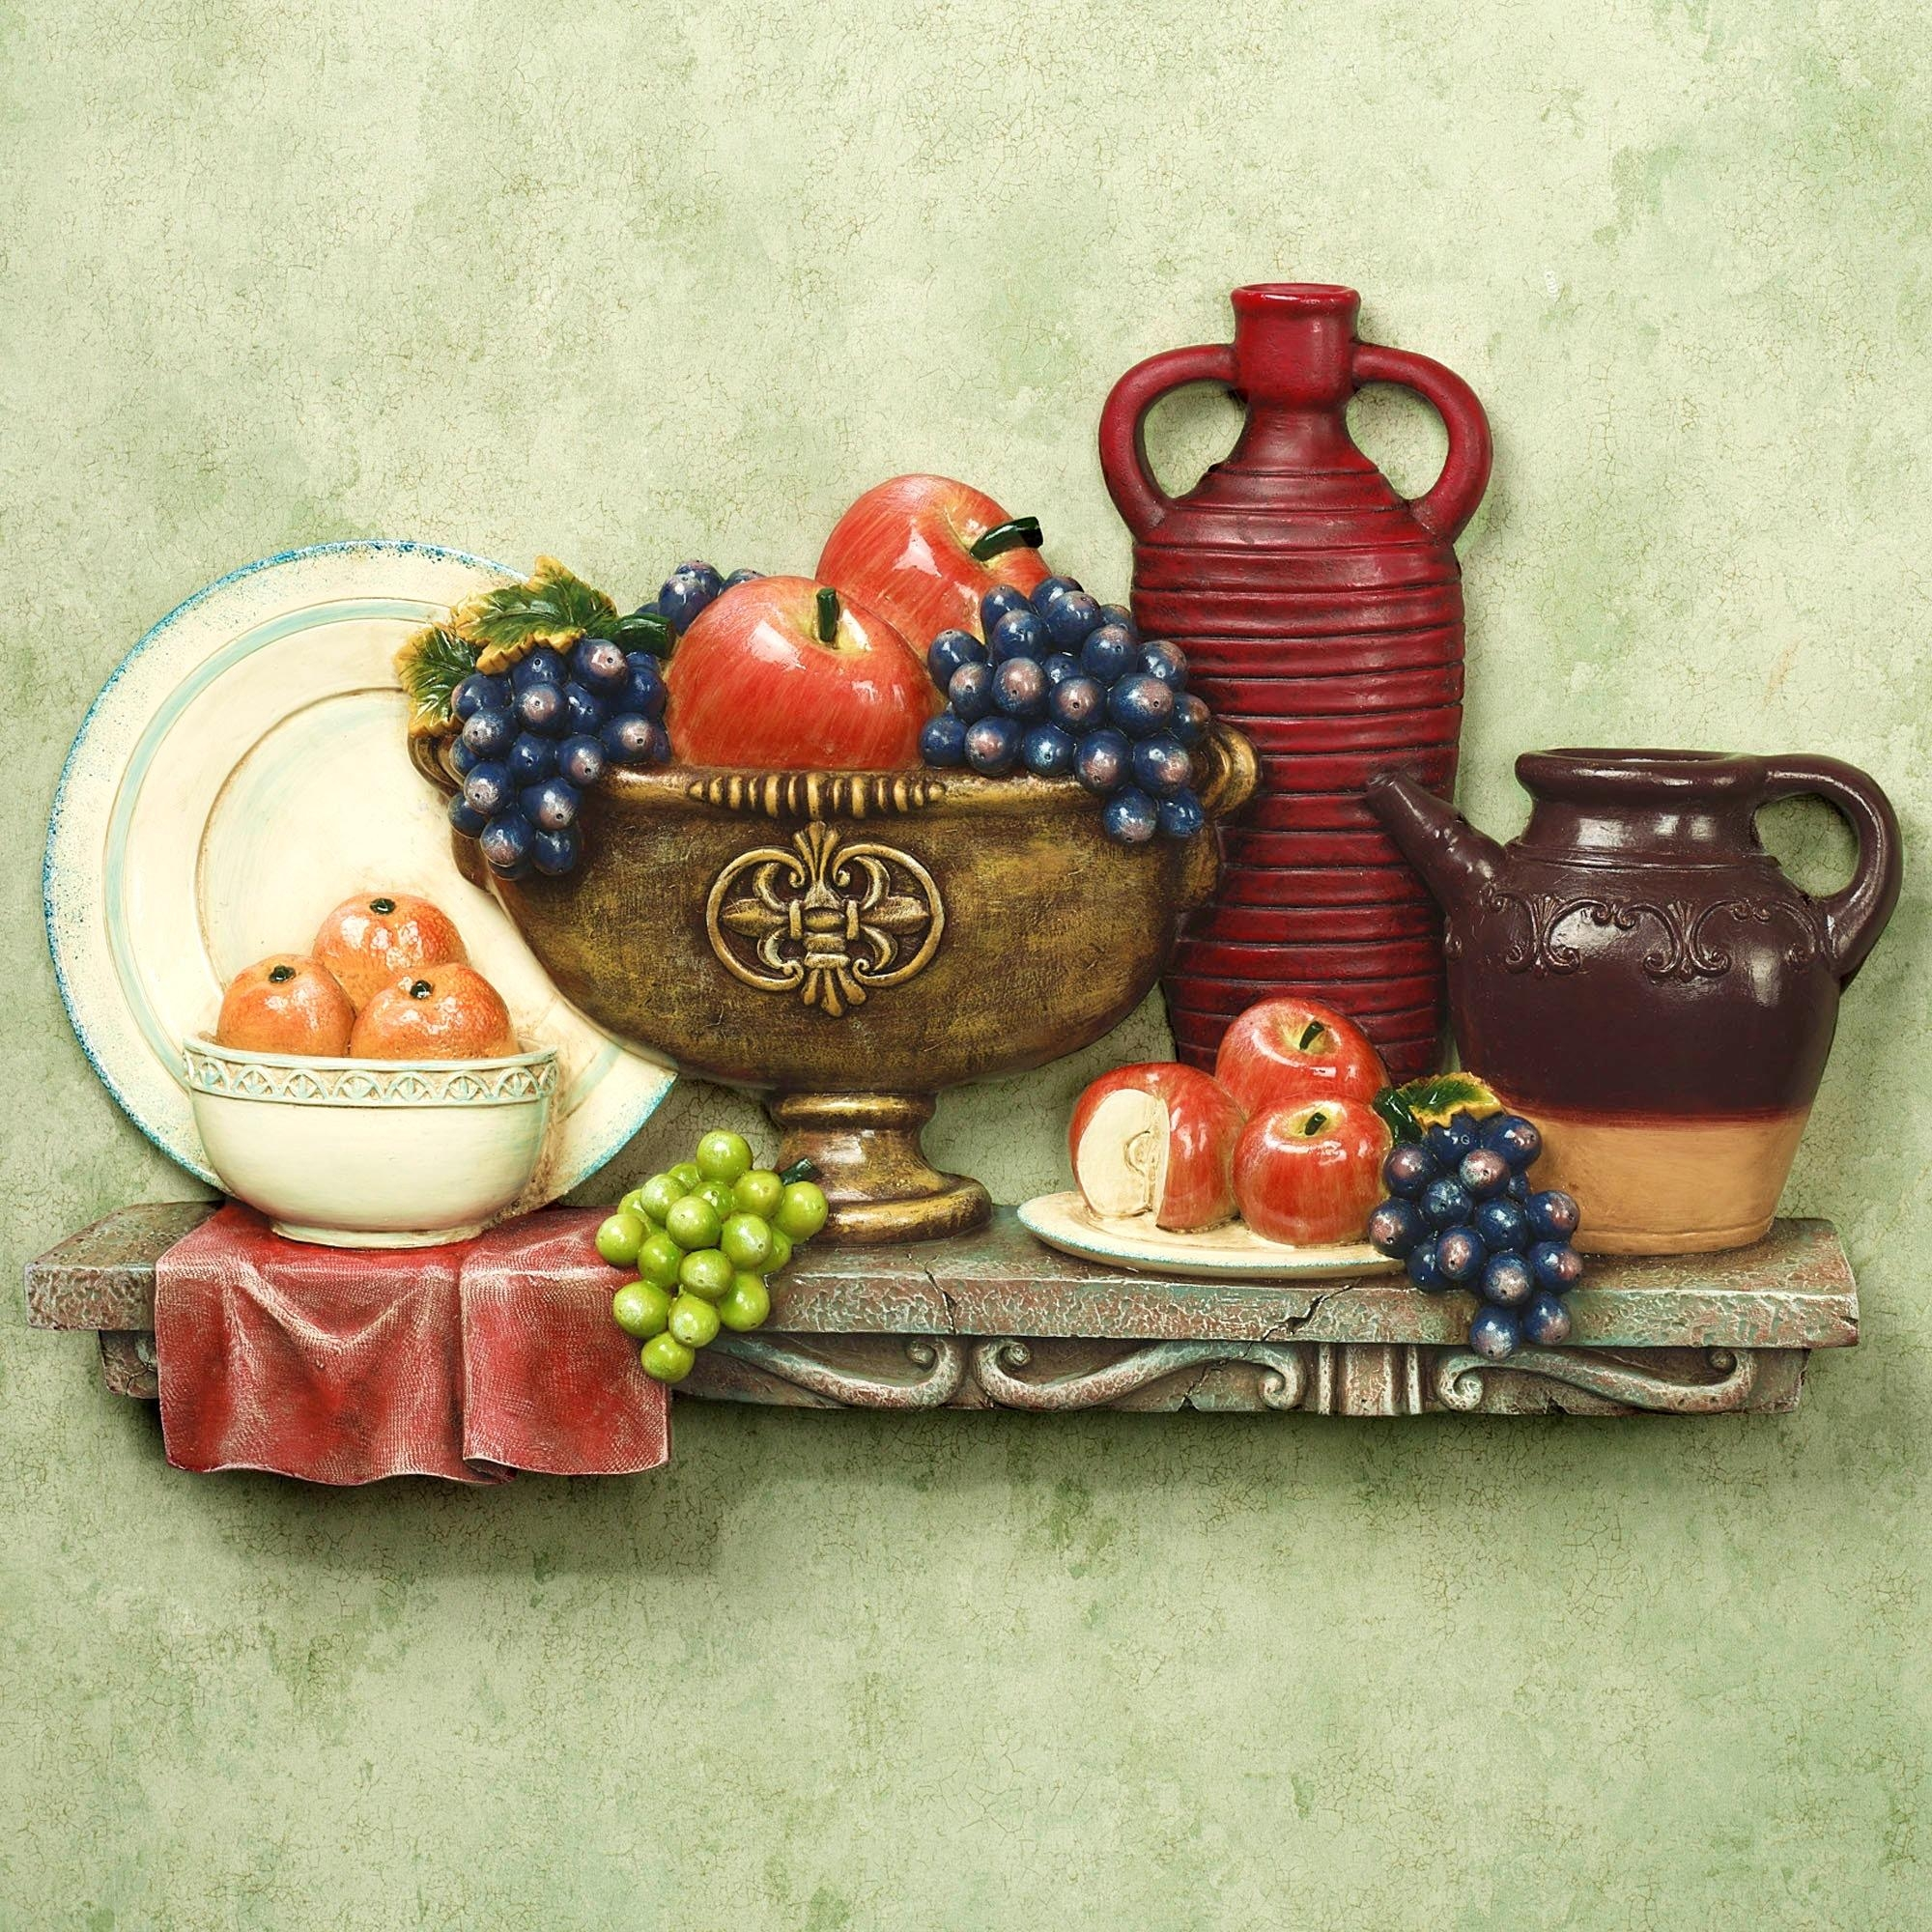 Furniture : Heavenly Kitchen And Spice Textual Art Plaque Italian Throughout Old Italian Wall Art (View 14 of 20)